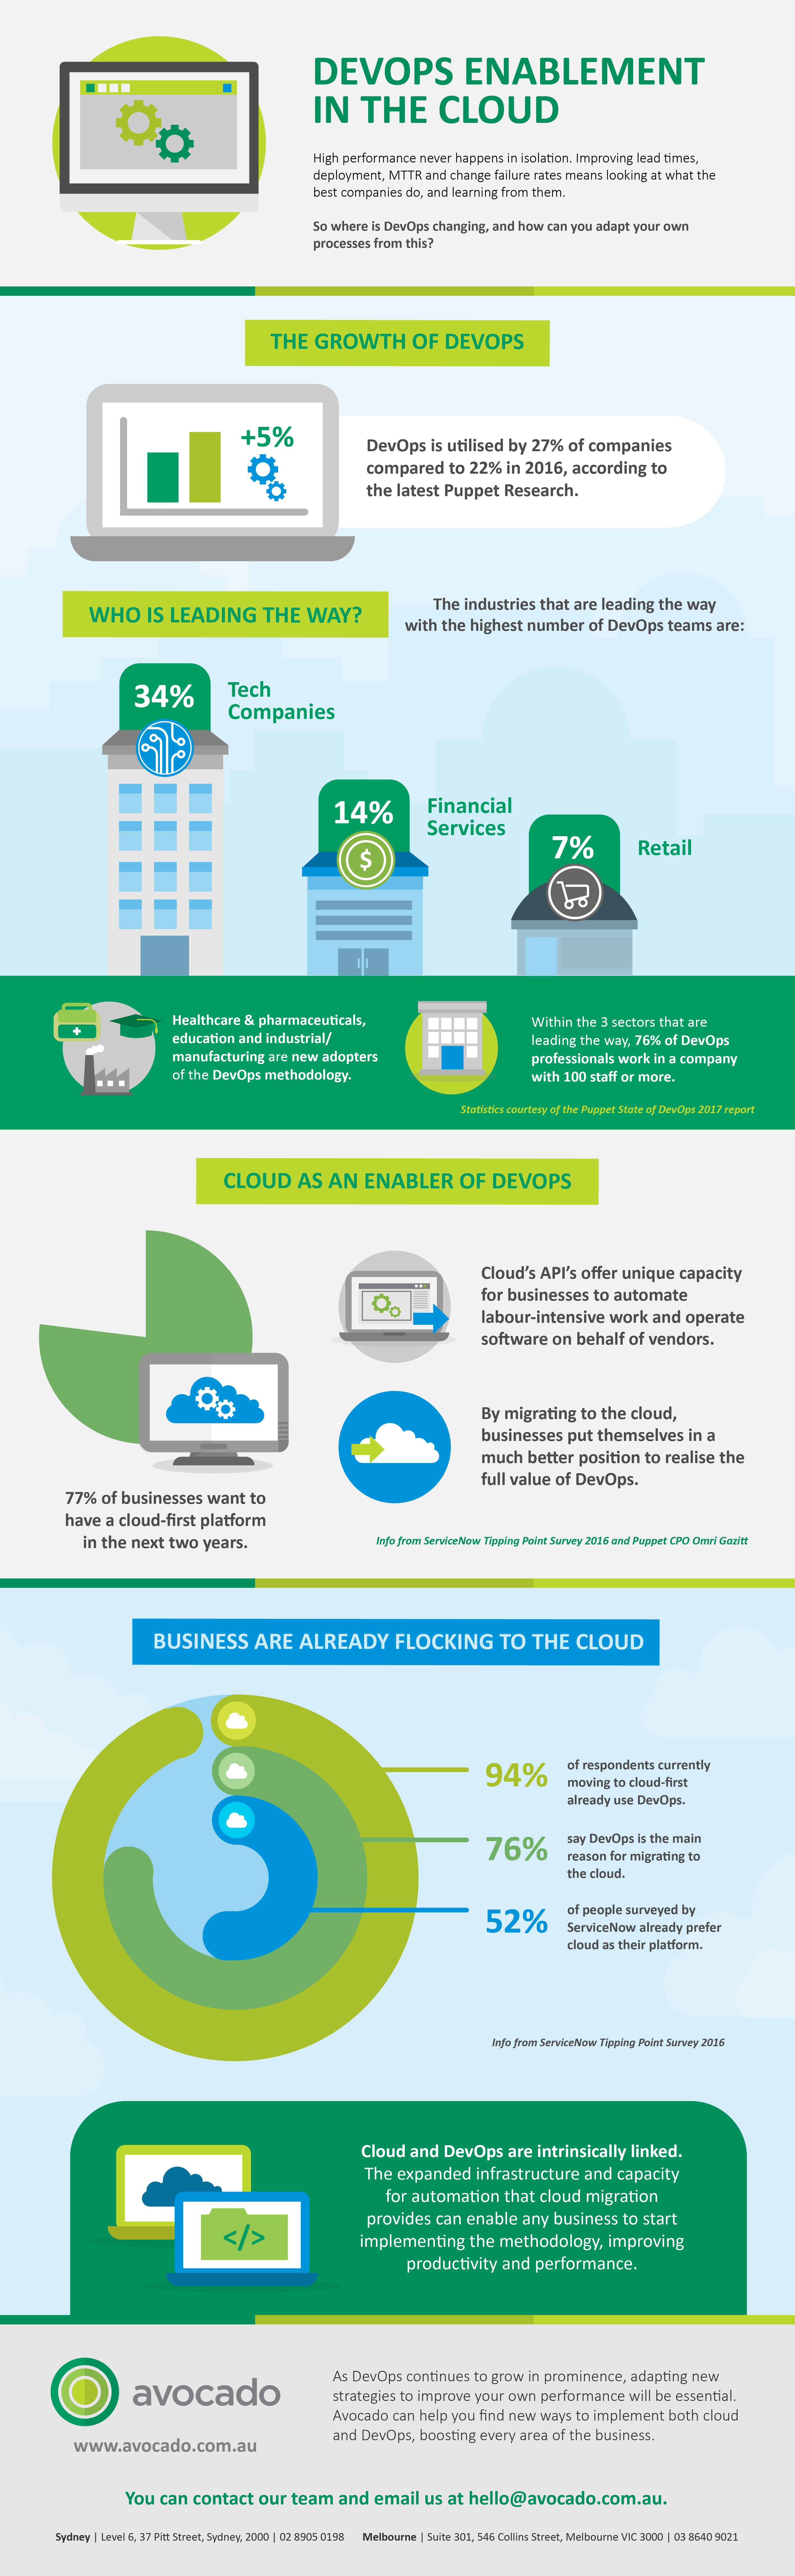 DevOps Enablement in the Cloud - Large